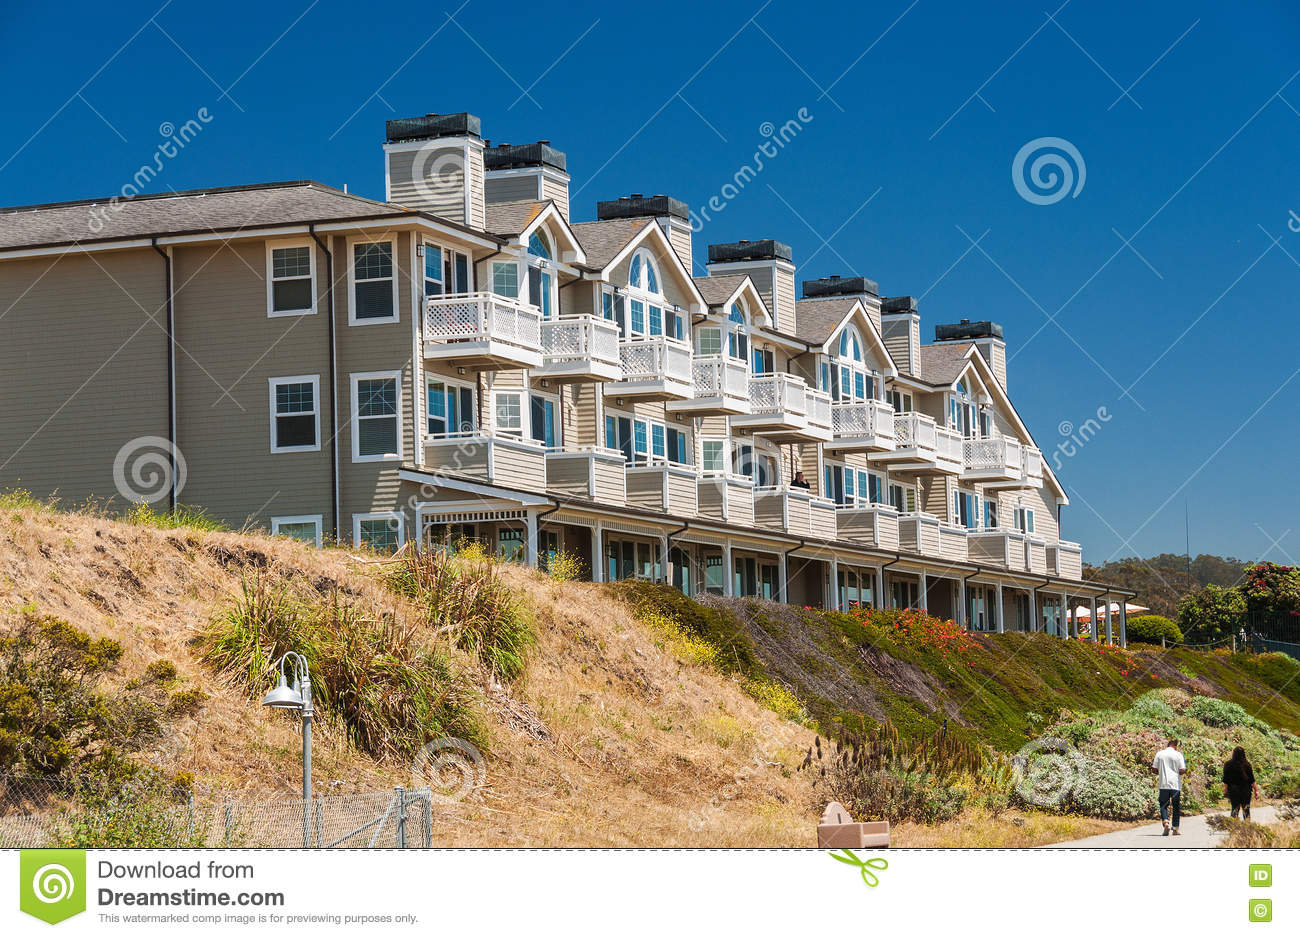 half moon bay online dating Great savings on hotels in half moon bay, saudi arabia online good availability and great rates read hotel reviews and choose the best hotel deal for your stay.